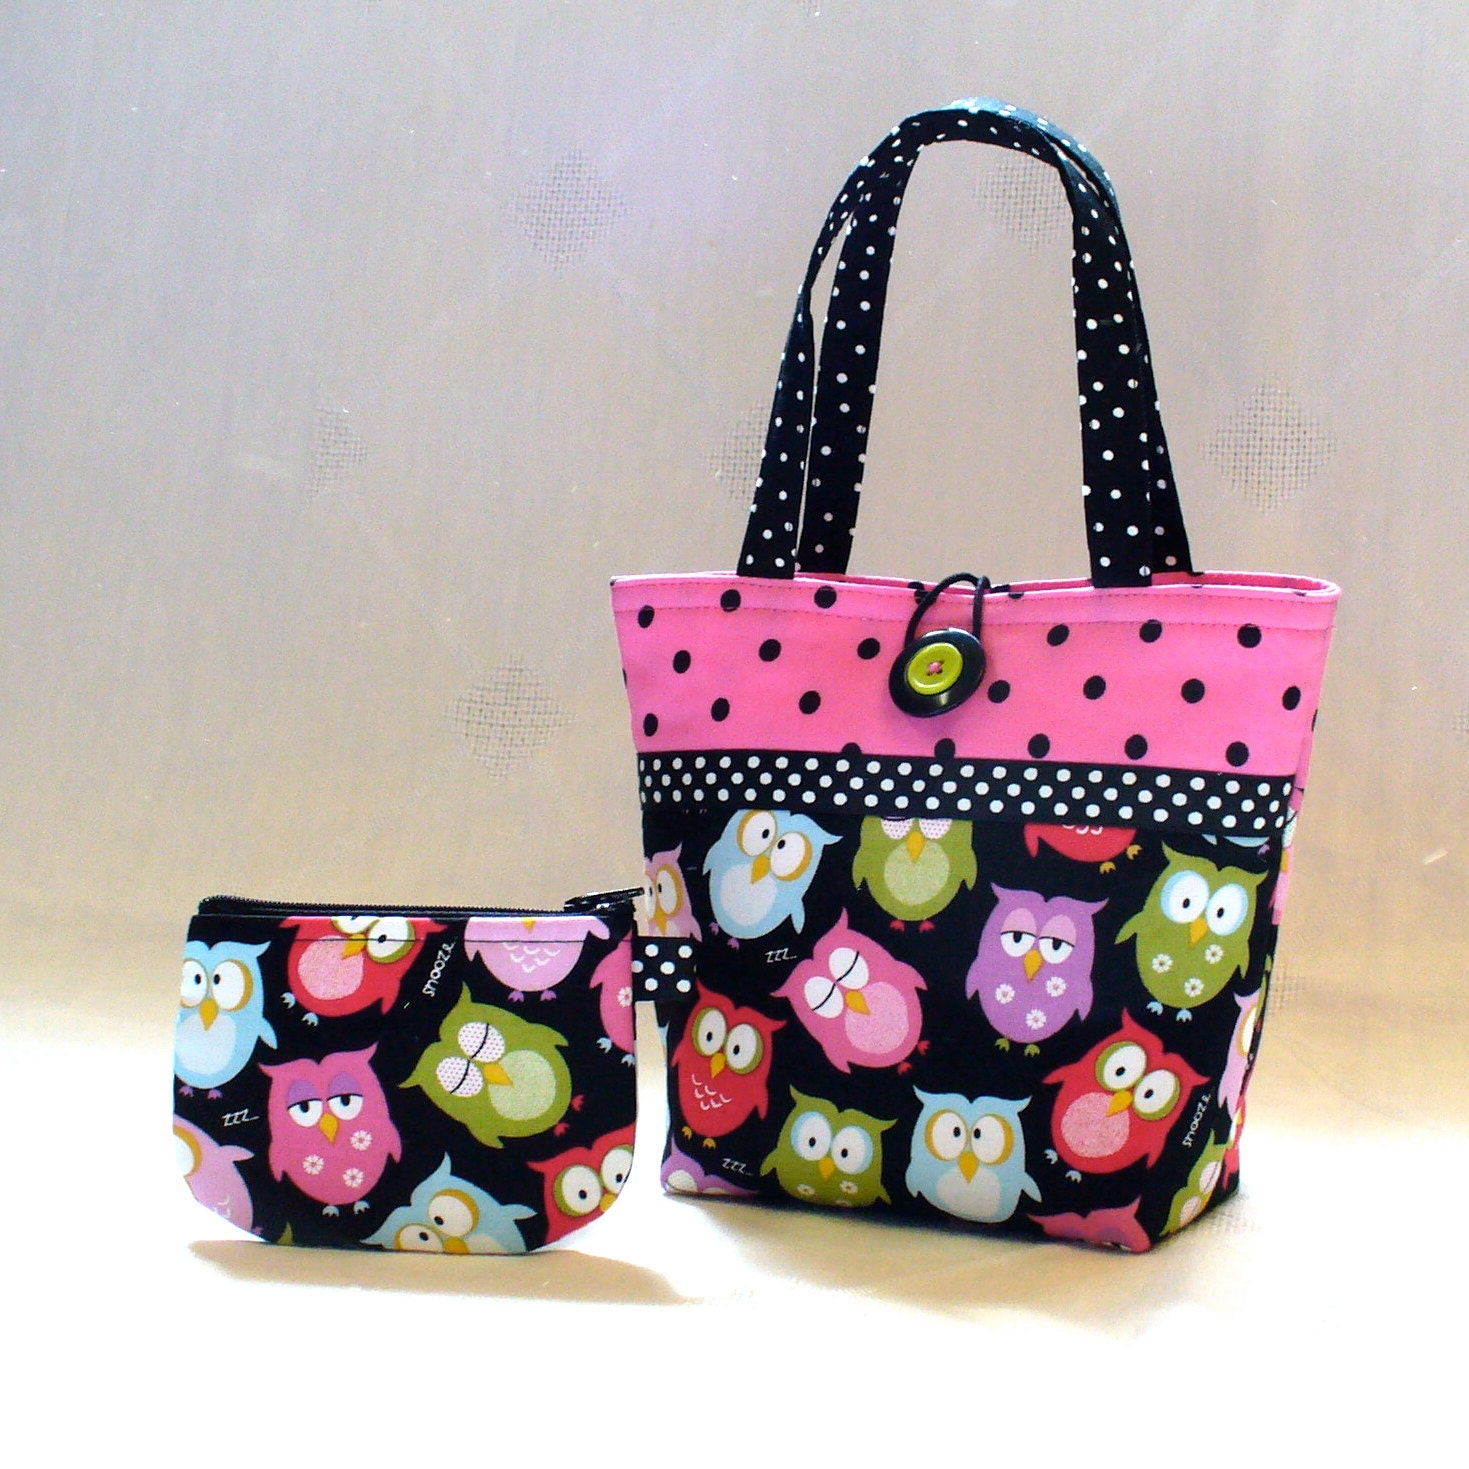 Jan 14,  · A Cute Little Patchwork Bag Do you love sewing cute little bags. as much as I do? The little bag is so cute and I love the fabric also! January 15, at AM aztel said So sweet!! Karen in Breezy Point January 15, at AM PamKittyMorning said Author: Bee In My Bonnet.